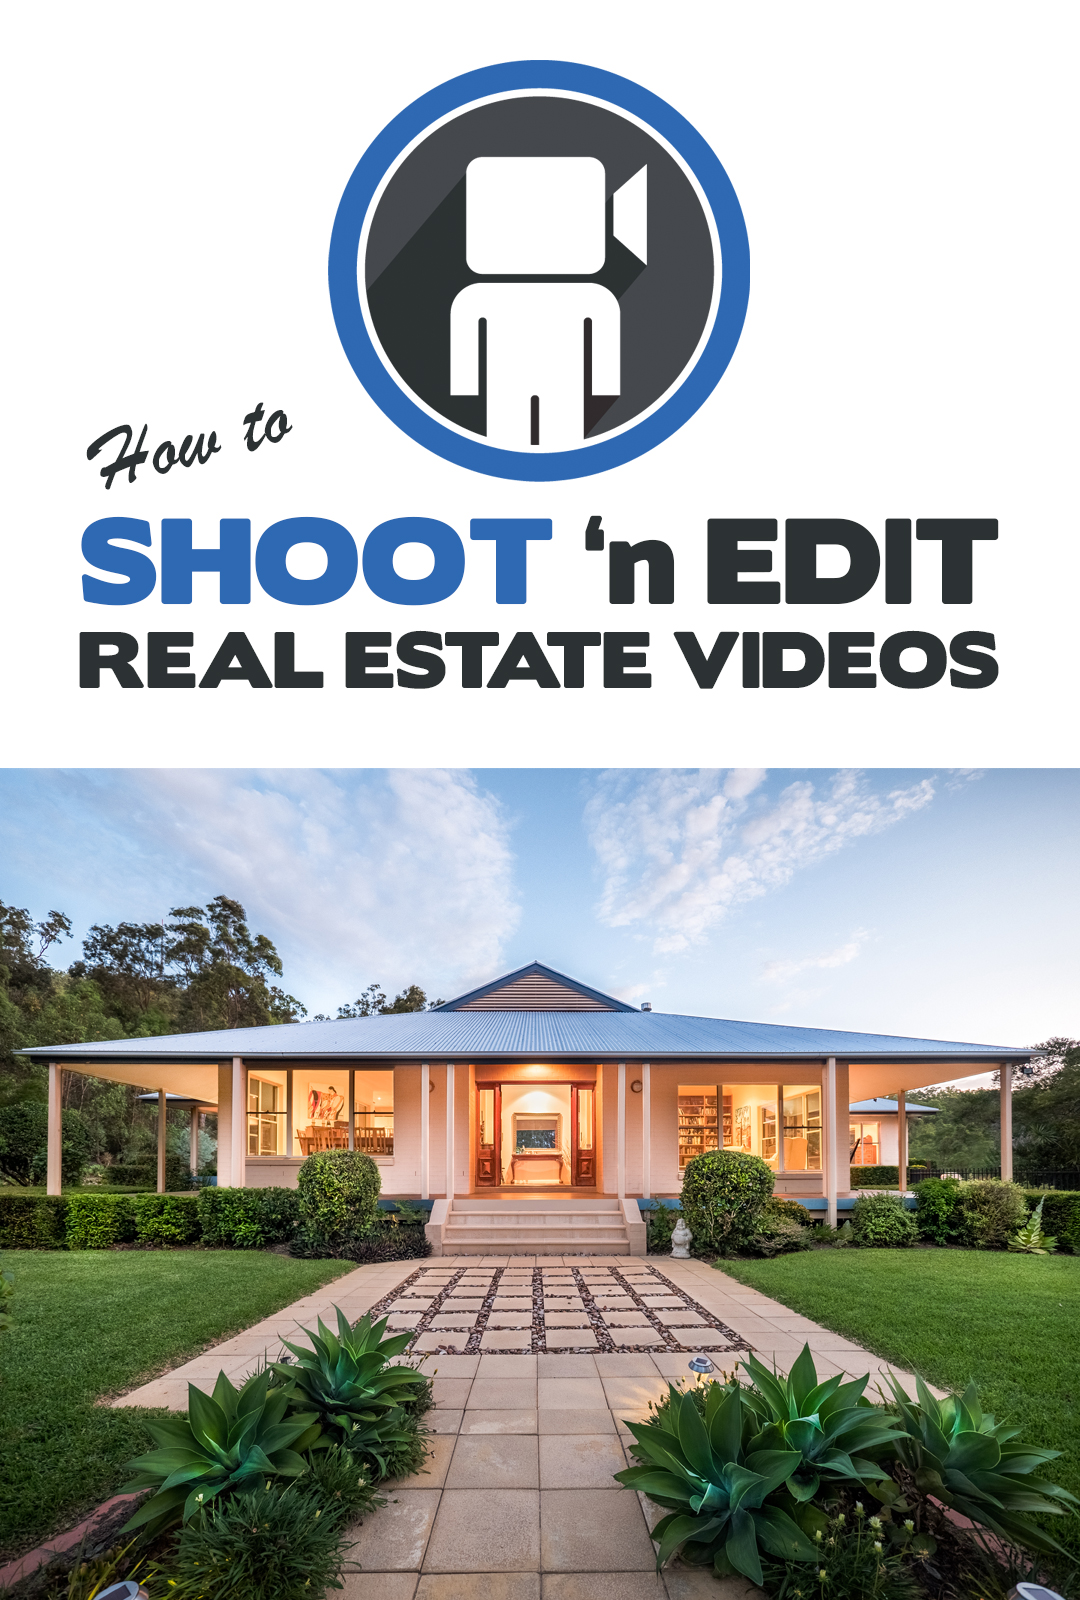 How to Shoot n Edit Real Estate Videos  - a training video series by Dave Dwyer.